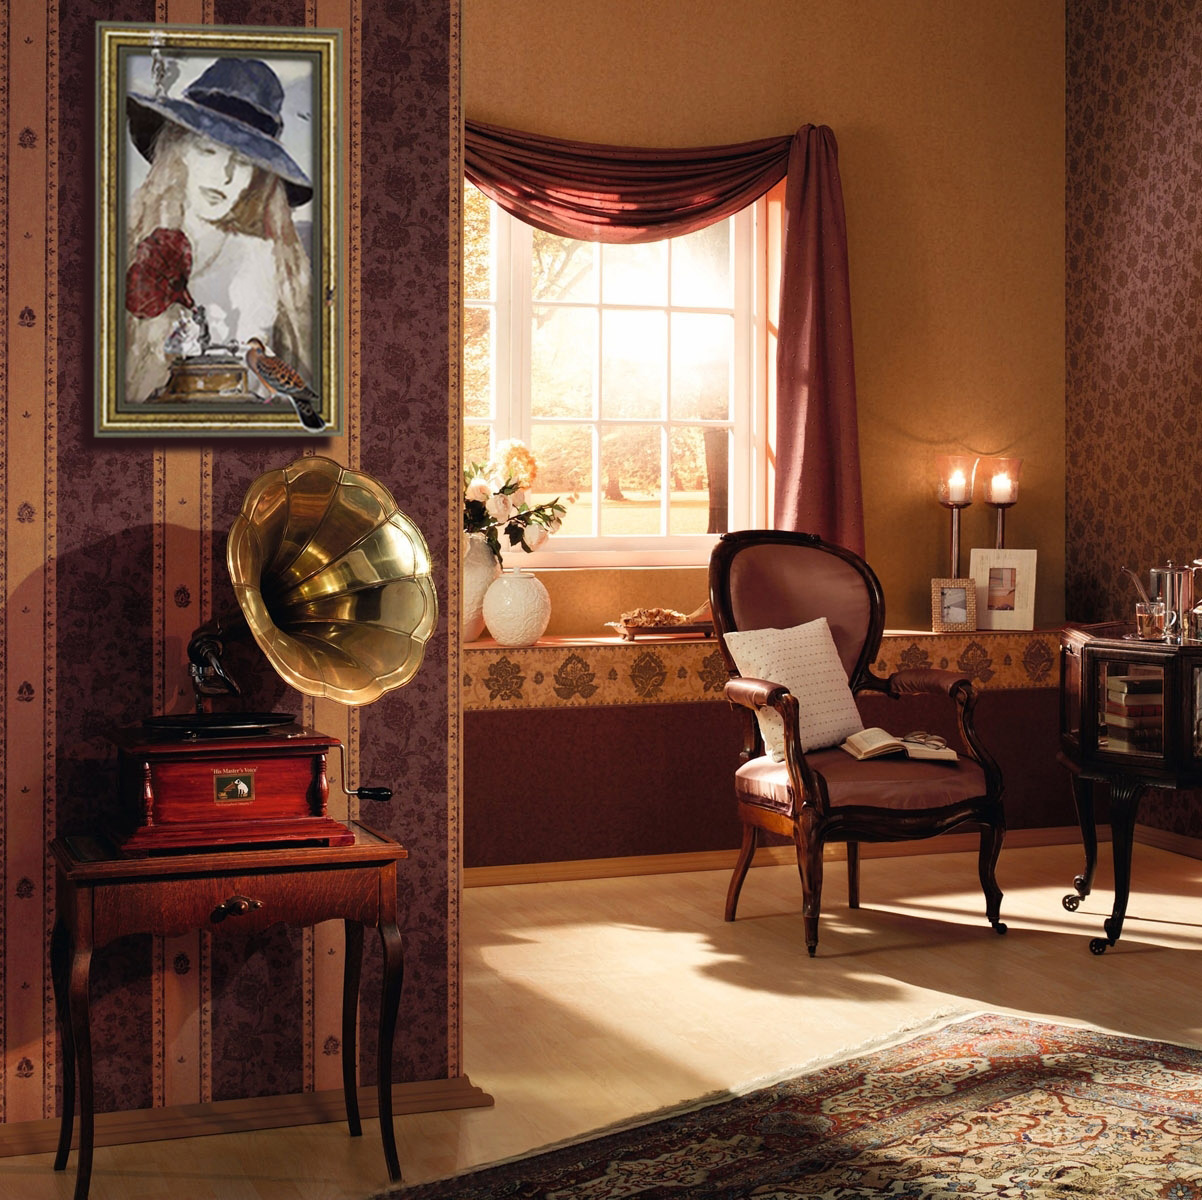 room_furniture_old_well-groomed_39331_1920x1200.jpg